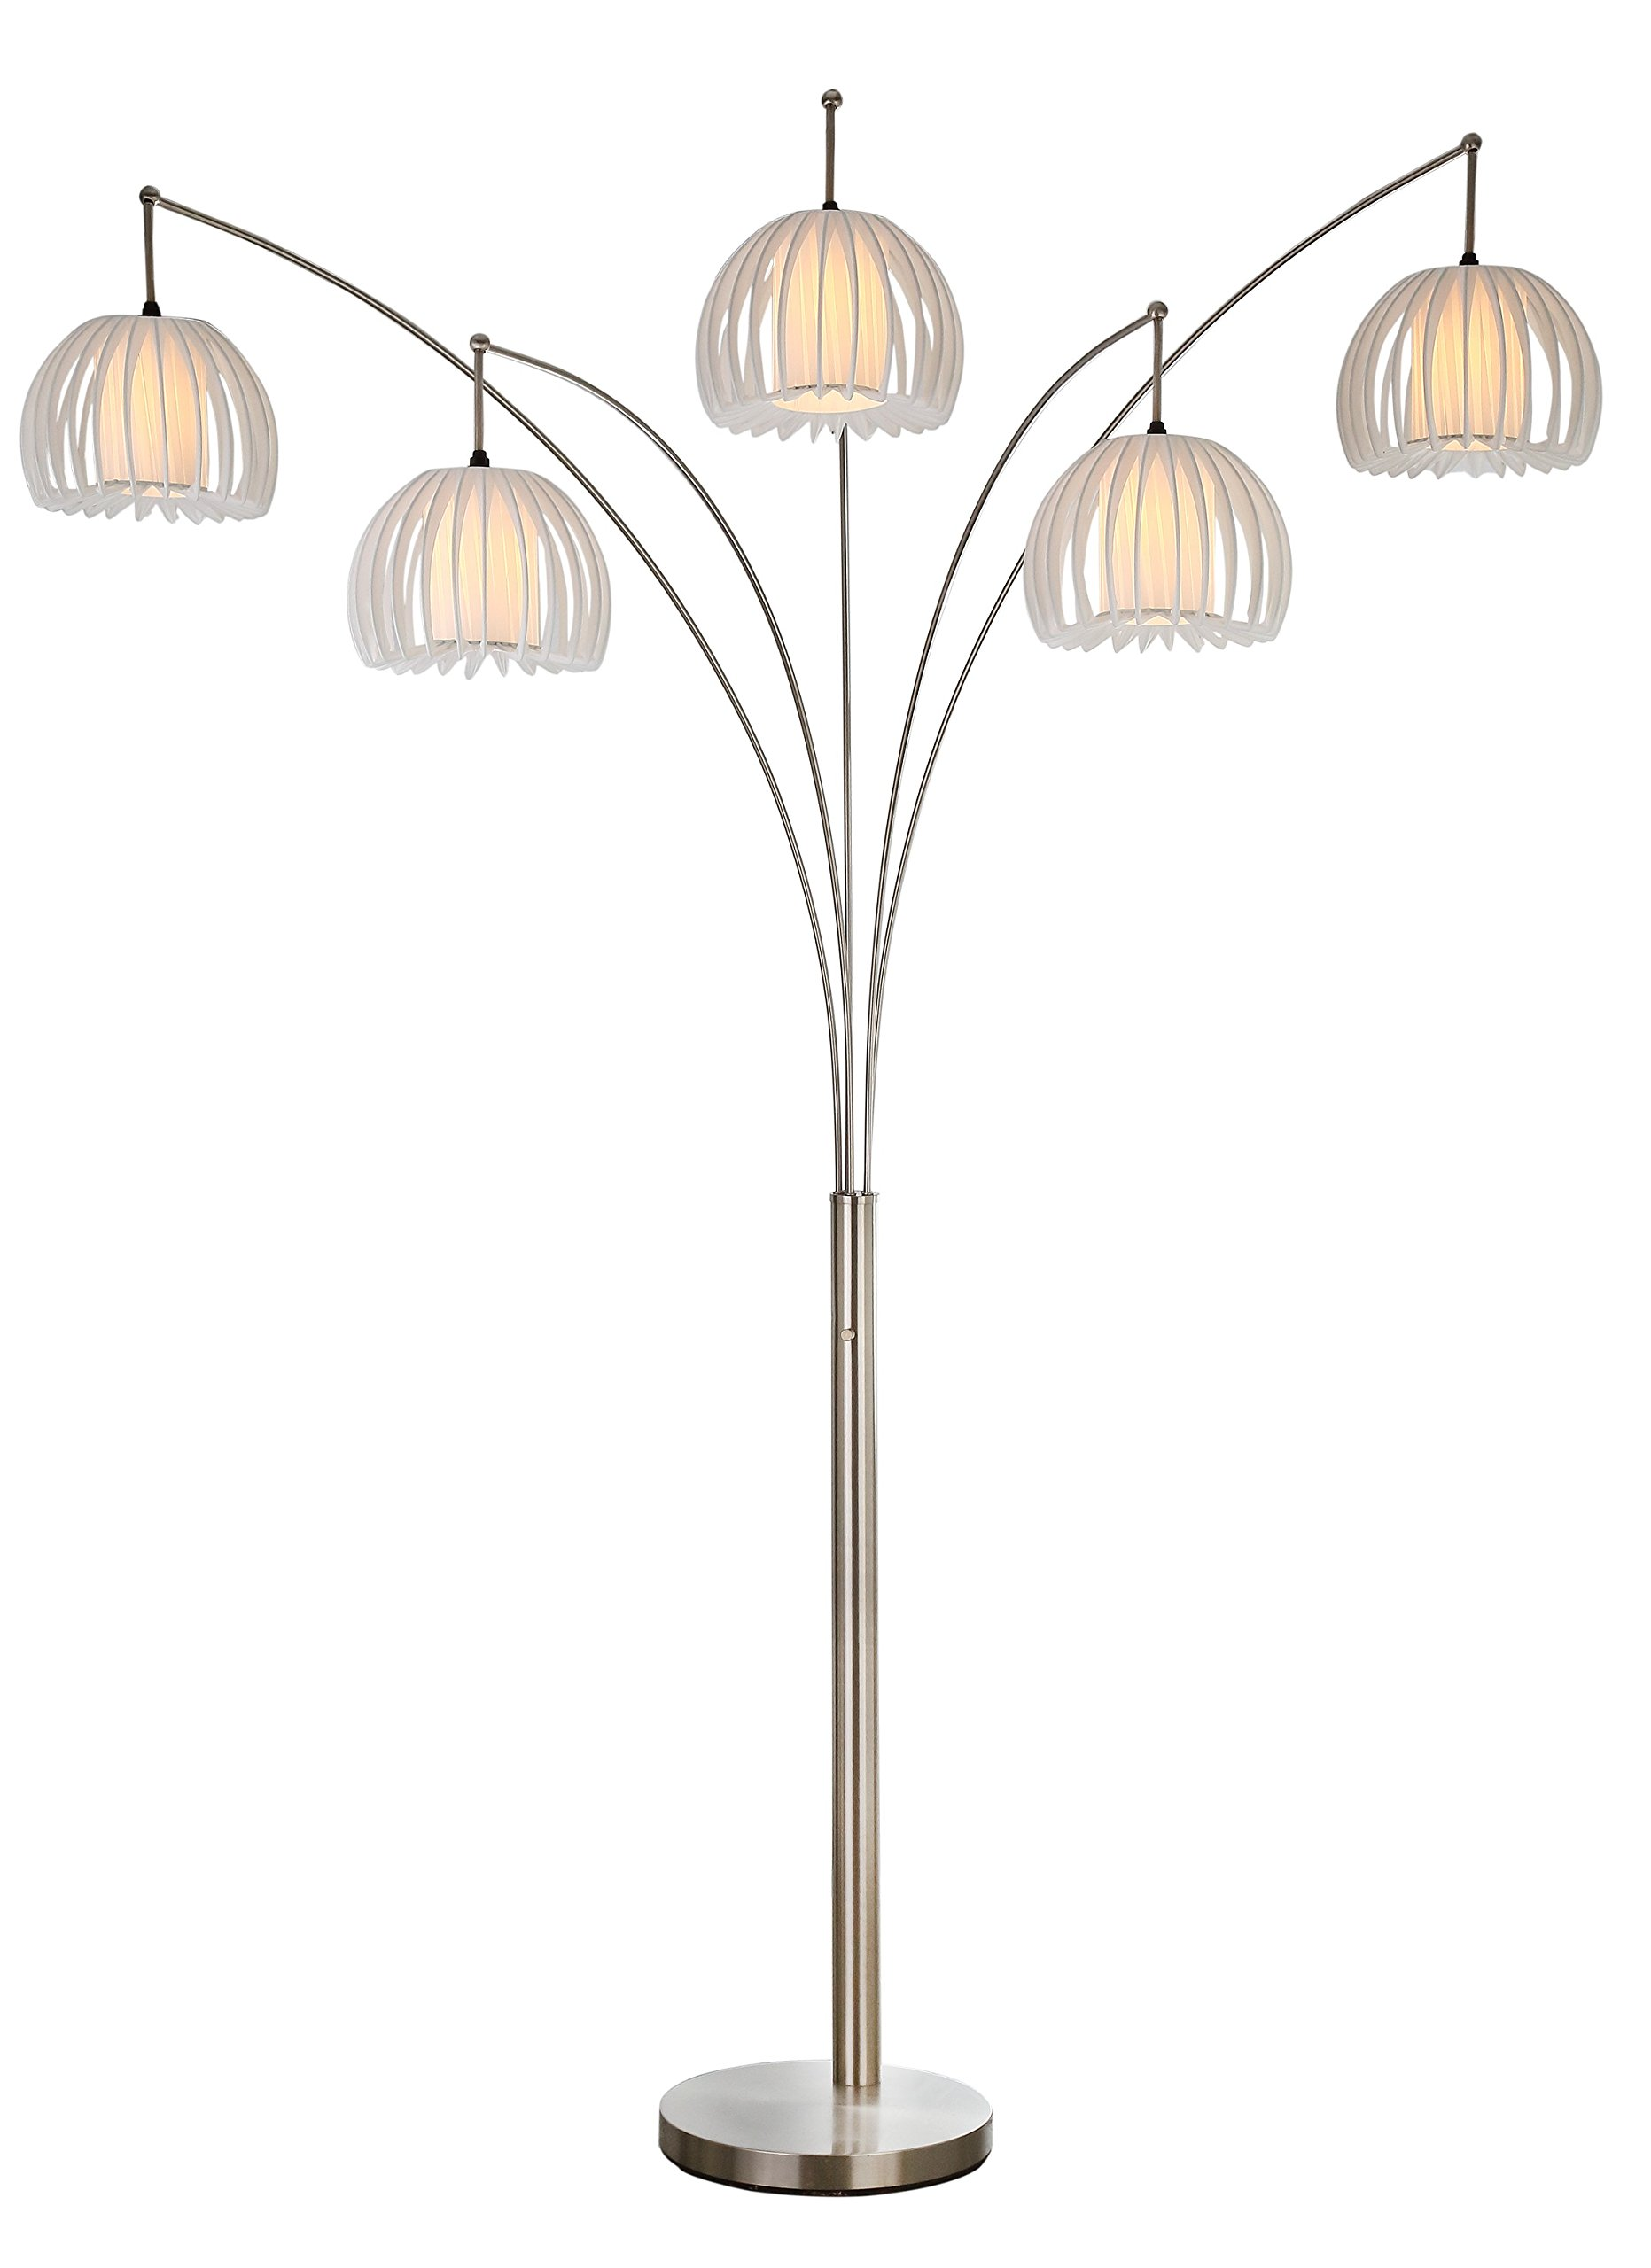 Artiva USA LED612218FSN Zucca 5-Arch Brushed Steel LED Floor Lamp with Dimmer, 89'', Brushed Nickel by Artiva USA